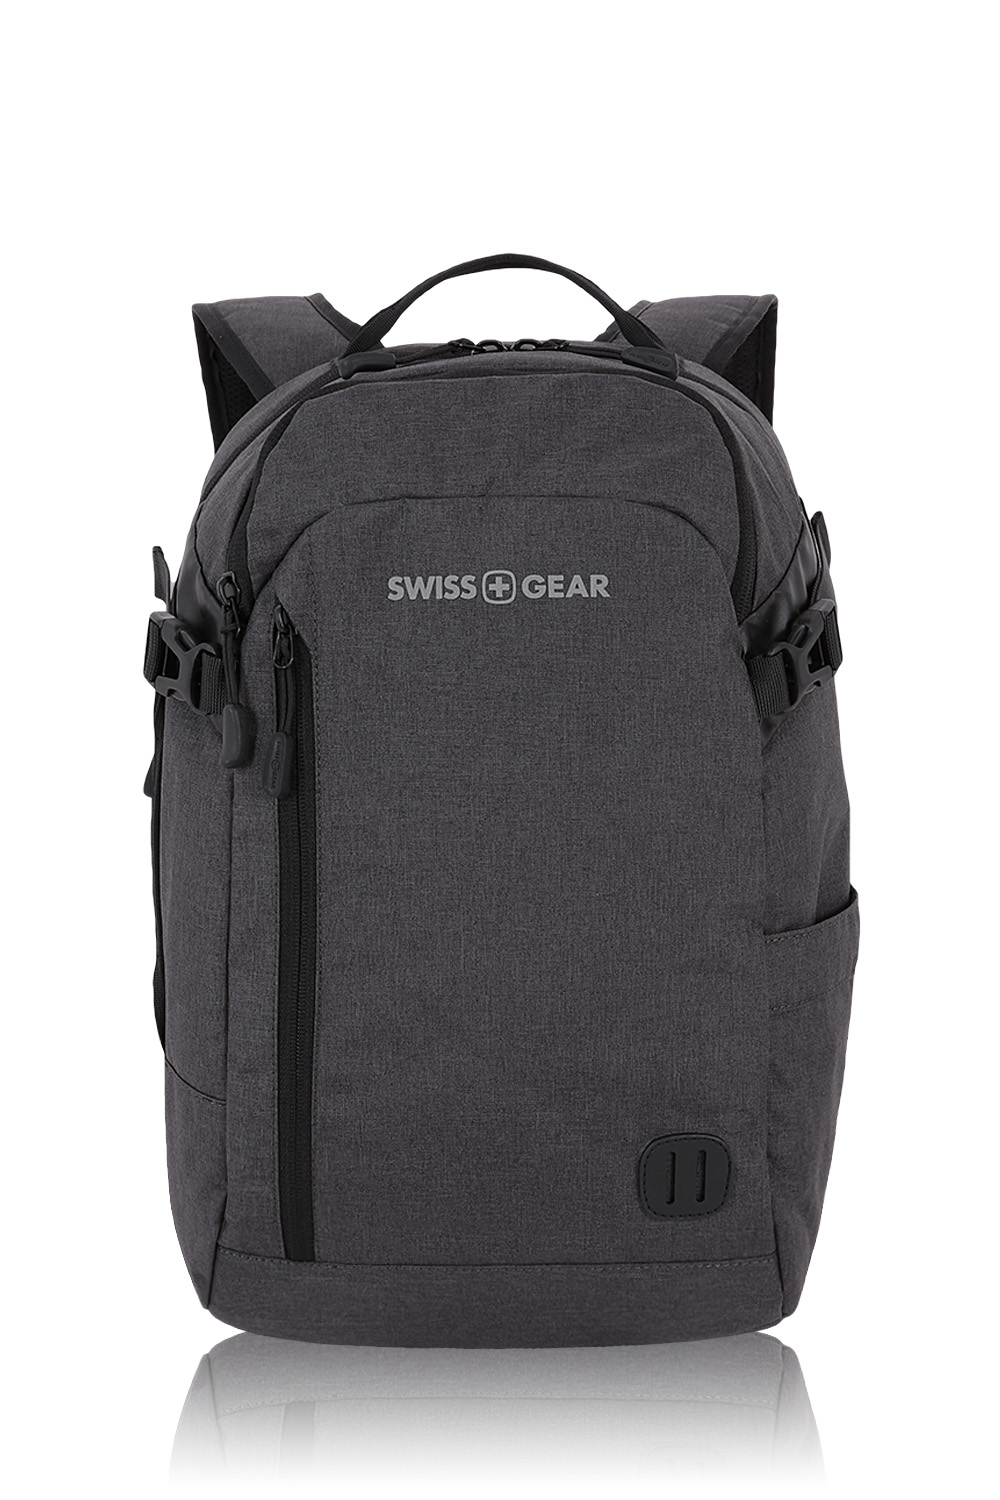 Swissgear 5337 Hybrid Backpack